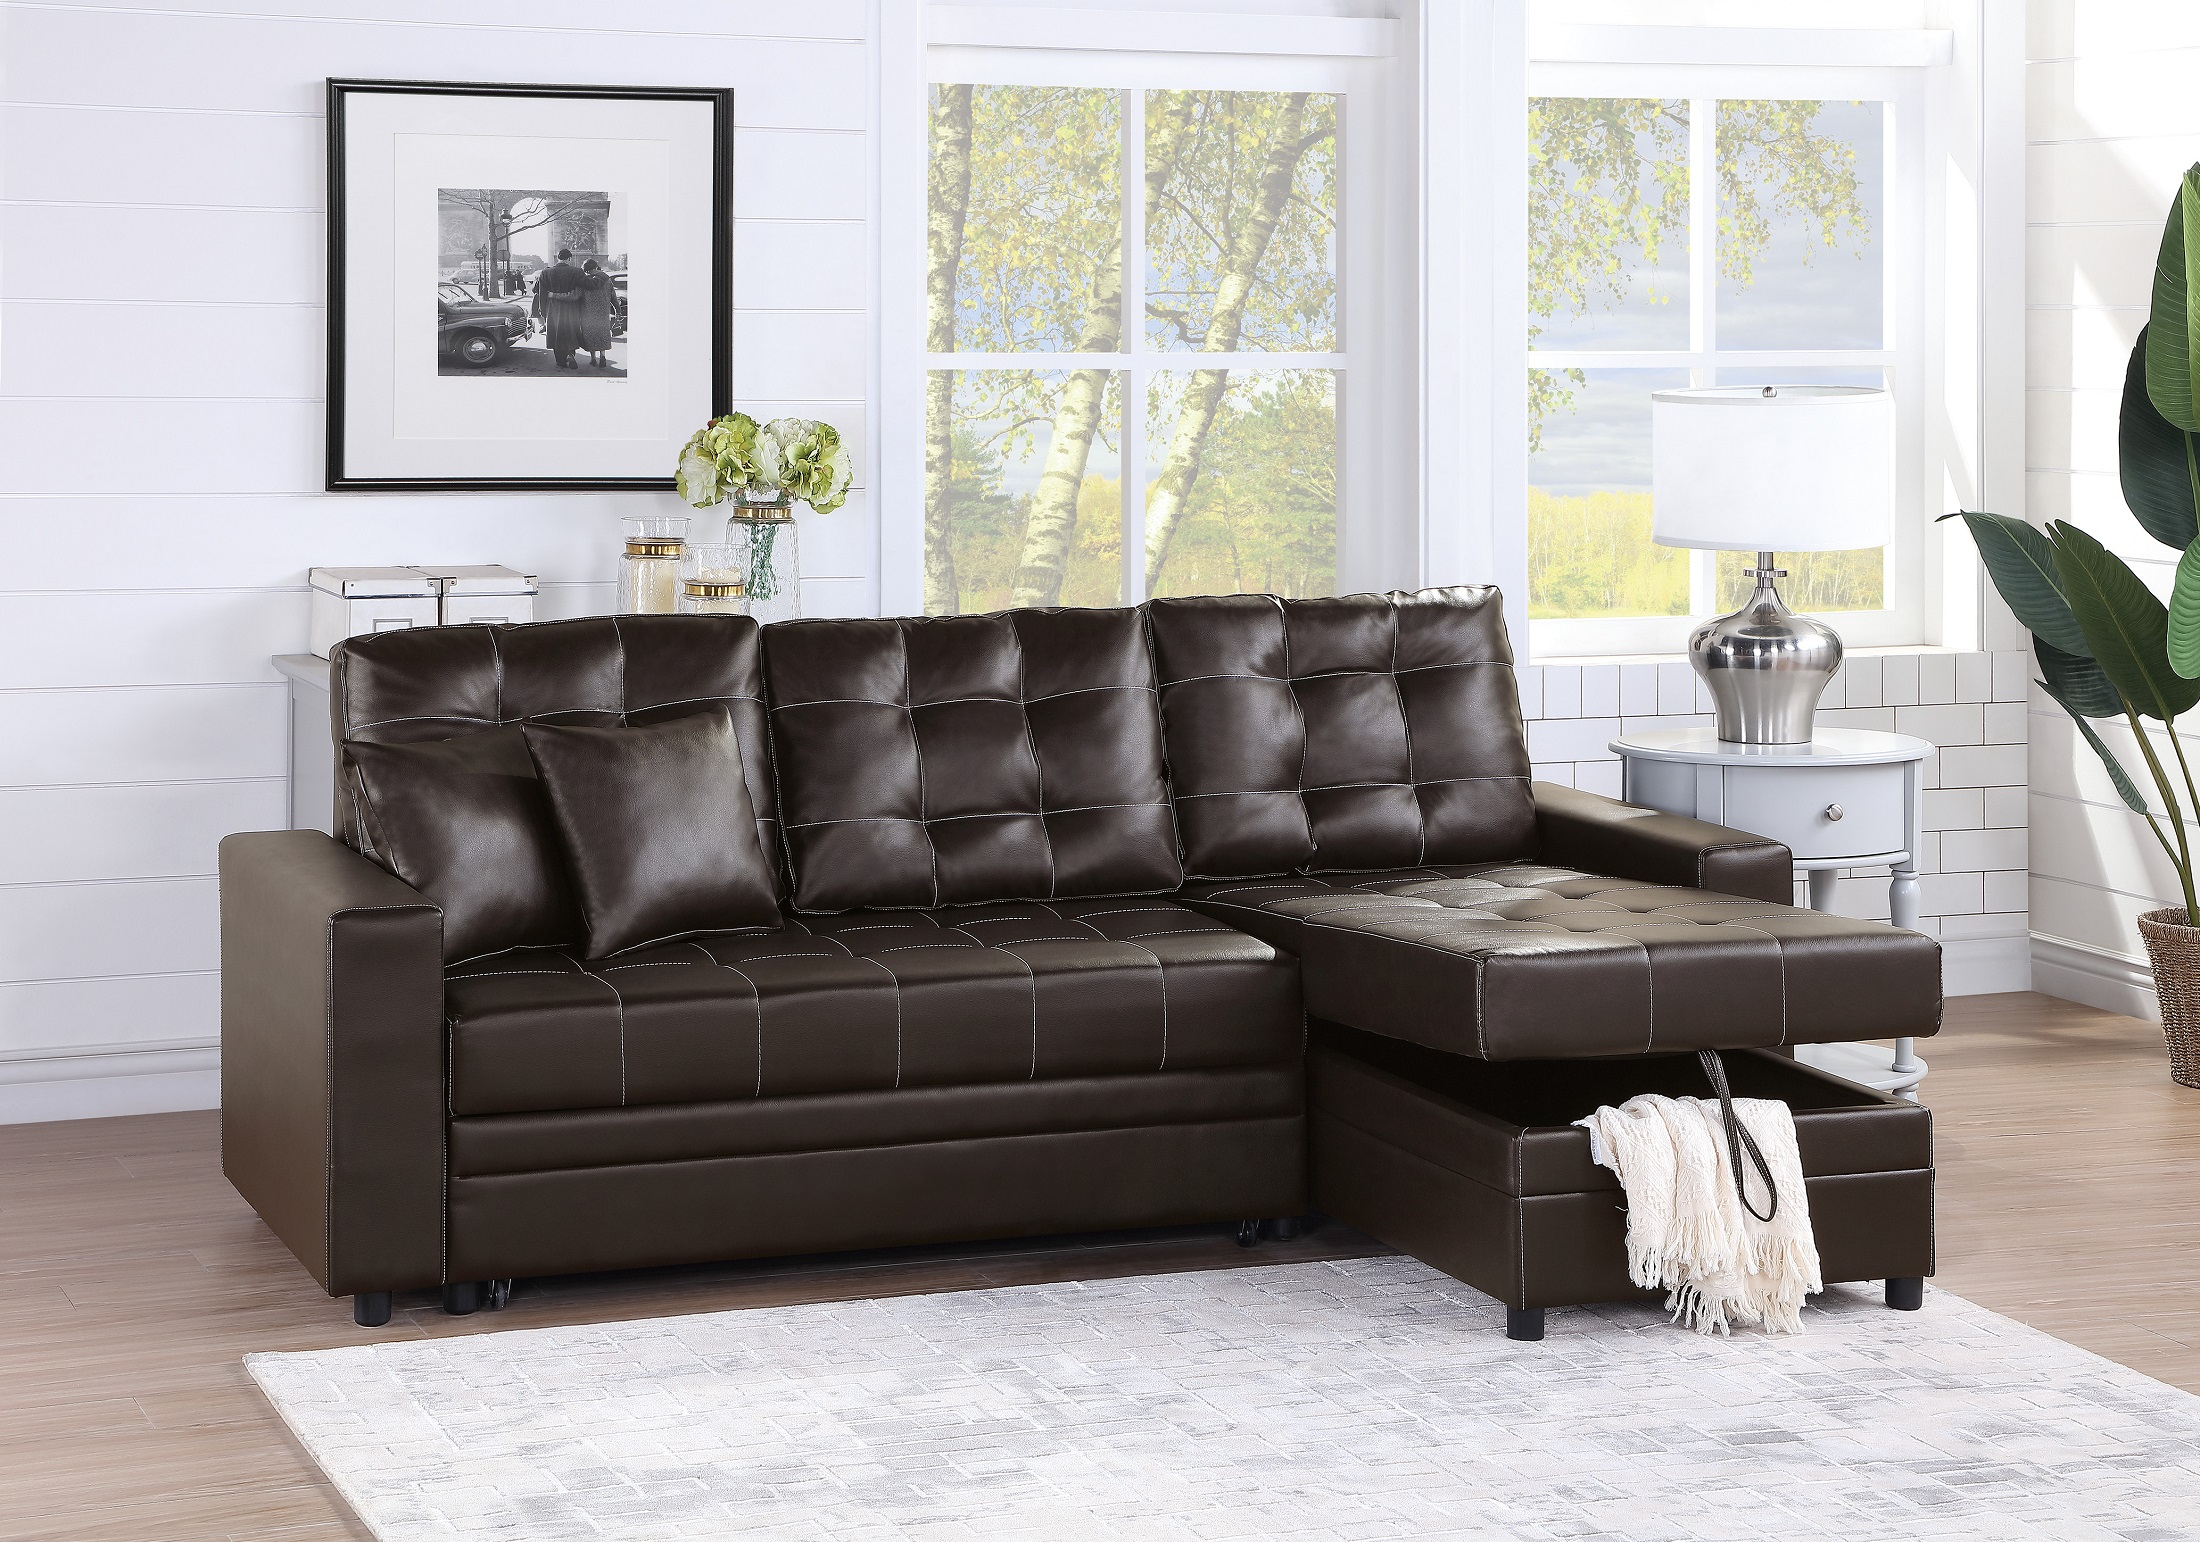 Convertible Sectional Sofa Set Living Room Furniture 2Pc Throughout 4Pc Crowningshield Contemporary Chaise Sectional Sofas (View 1 of 15)